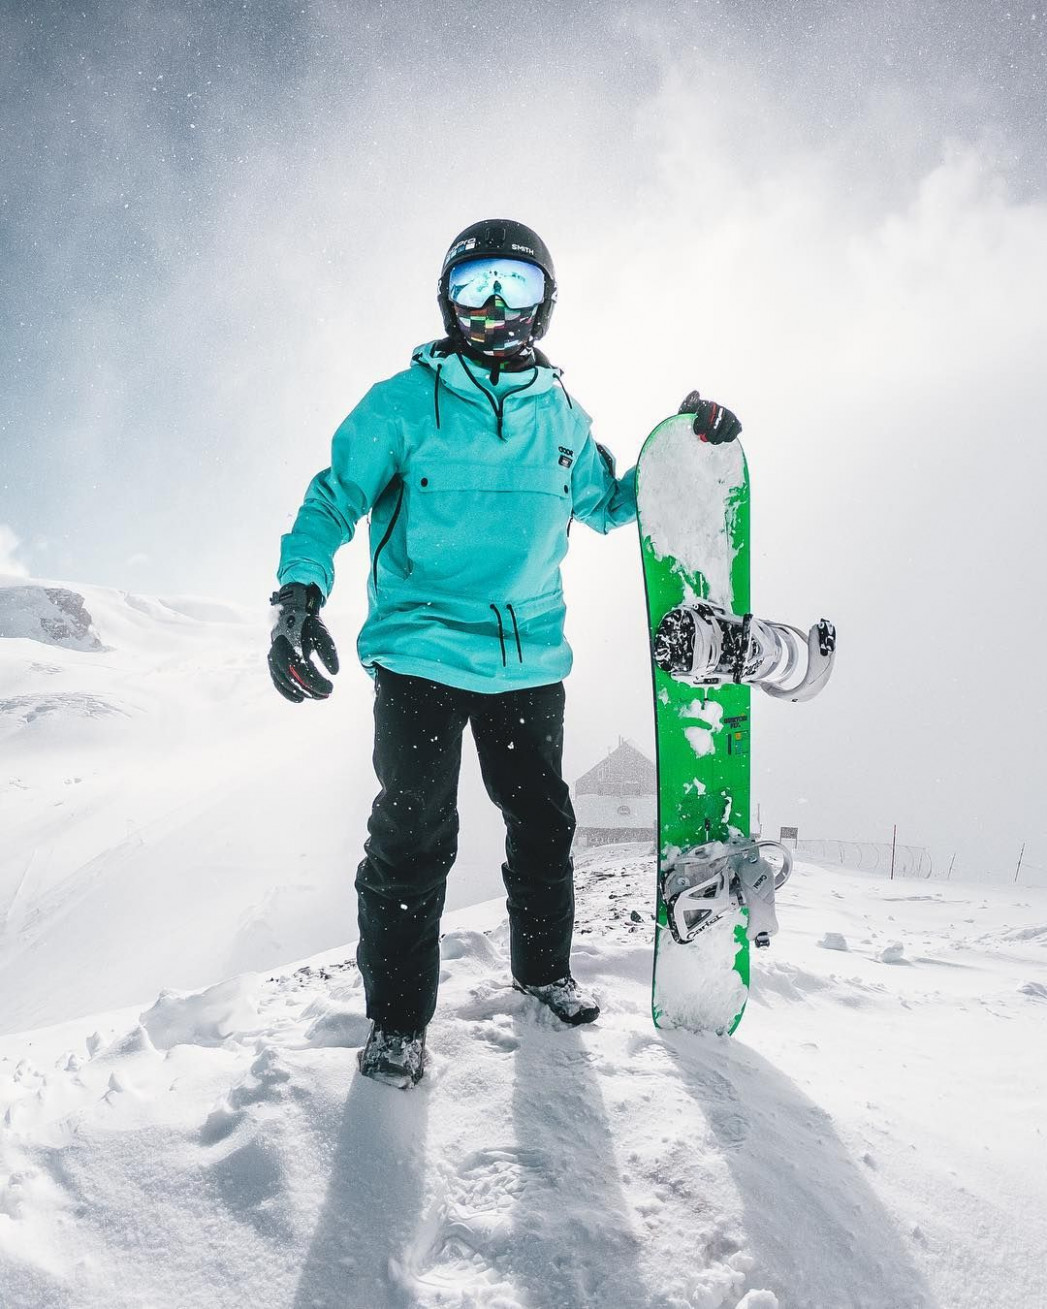 pin by francois on snowboarding/winter fun snowboarding outfit snowboard bekleidung